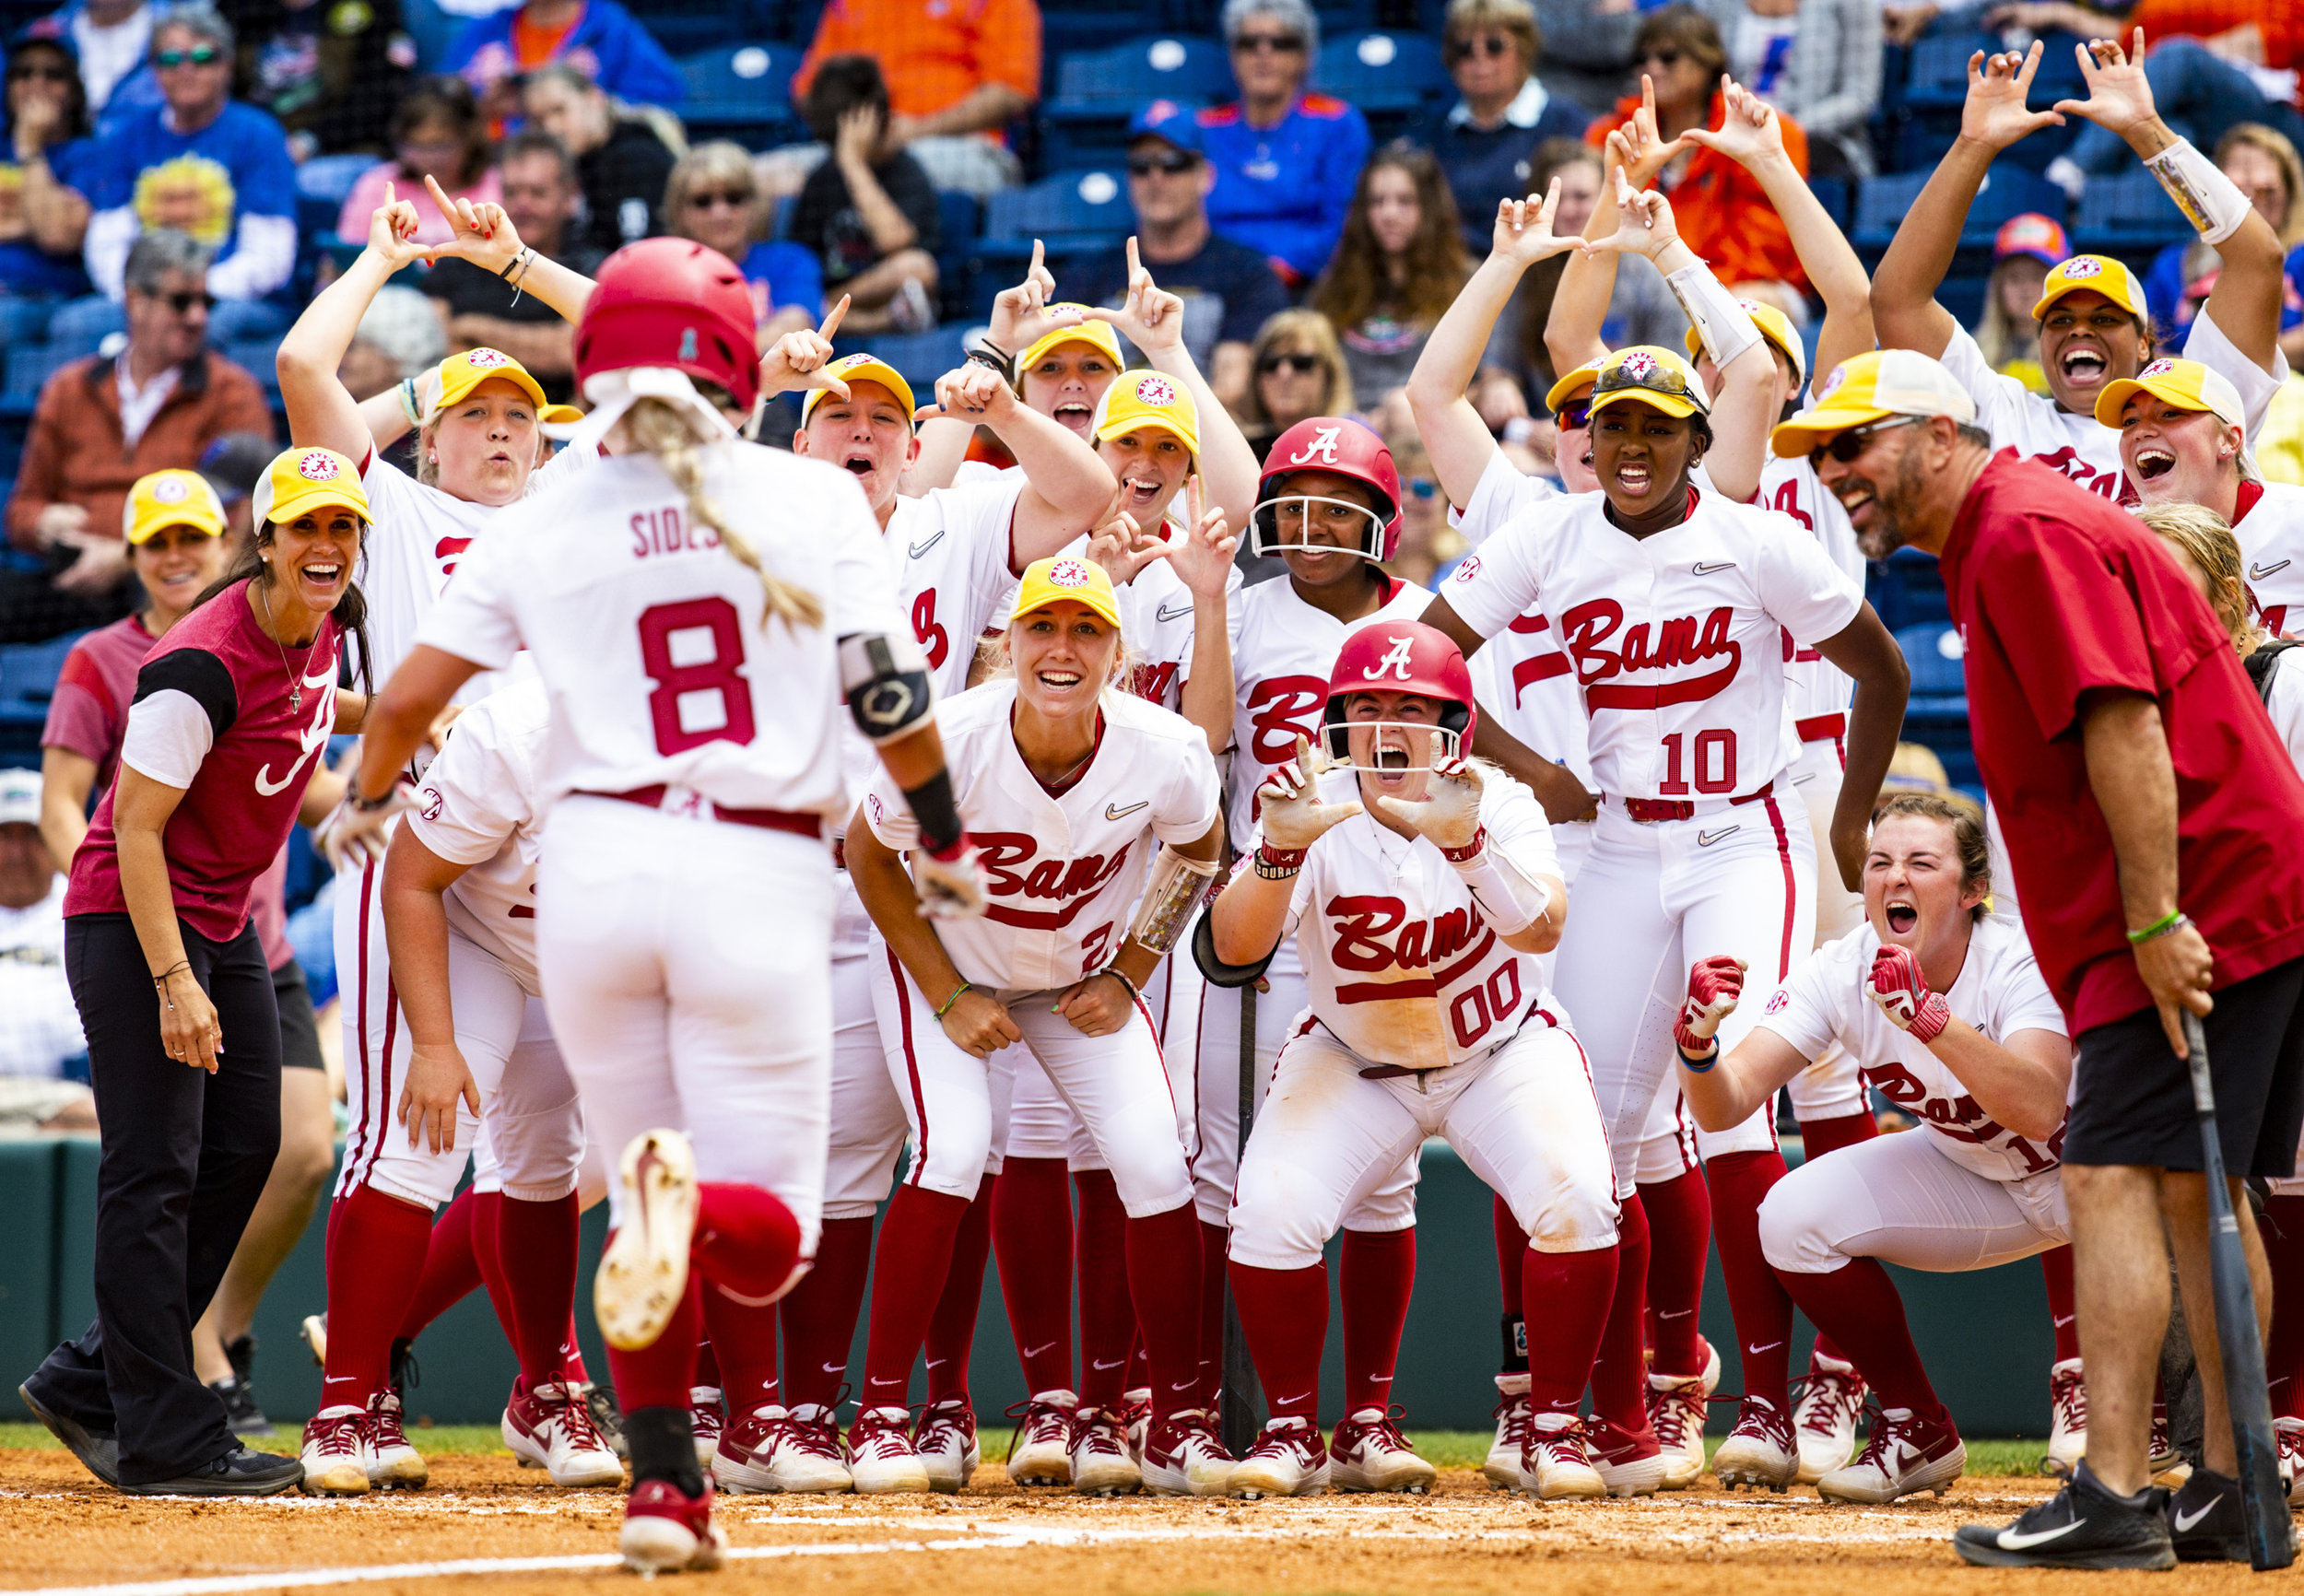 Alabama Crimson Tide outfielder KB Sides' (8) teammates celebrate as Sides comes in to score after hitting a home run during the Florida Gators home game against the Alabama Crimson Tide on April 20, 2019. The Gators lost 3-0 to the Crimson Tide.